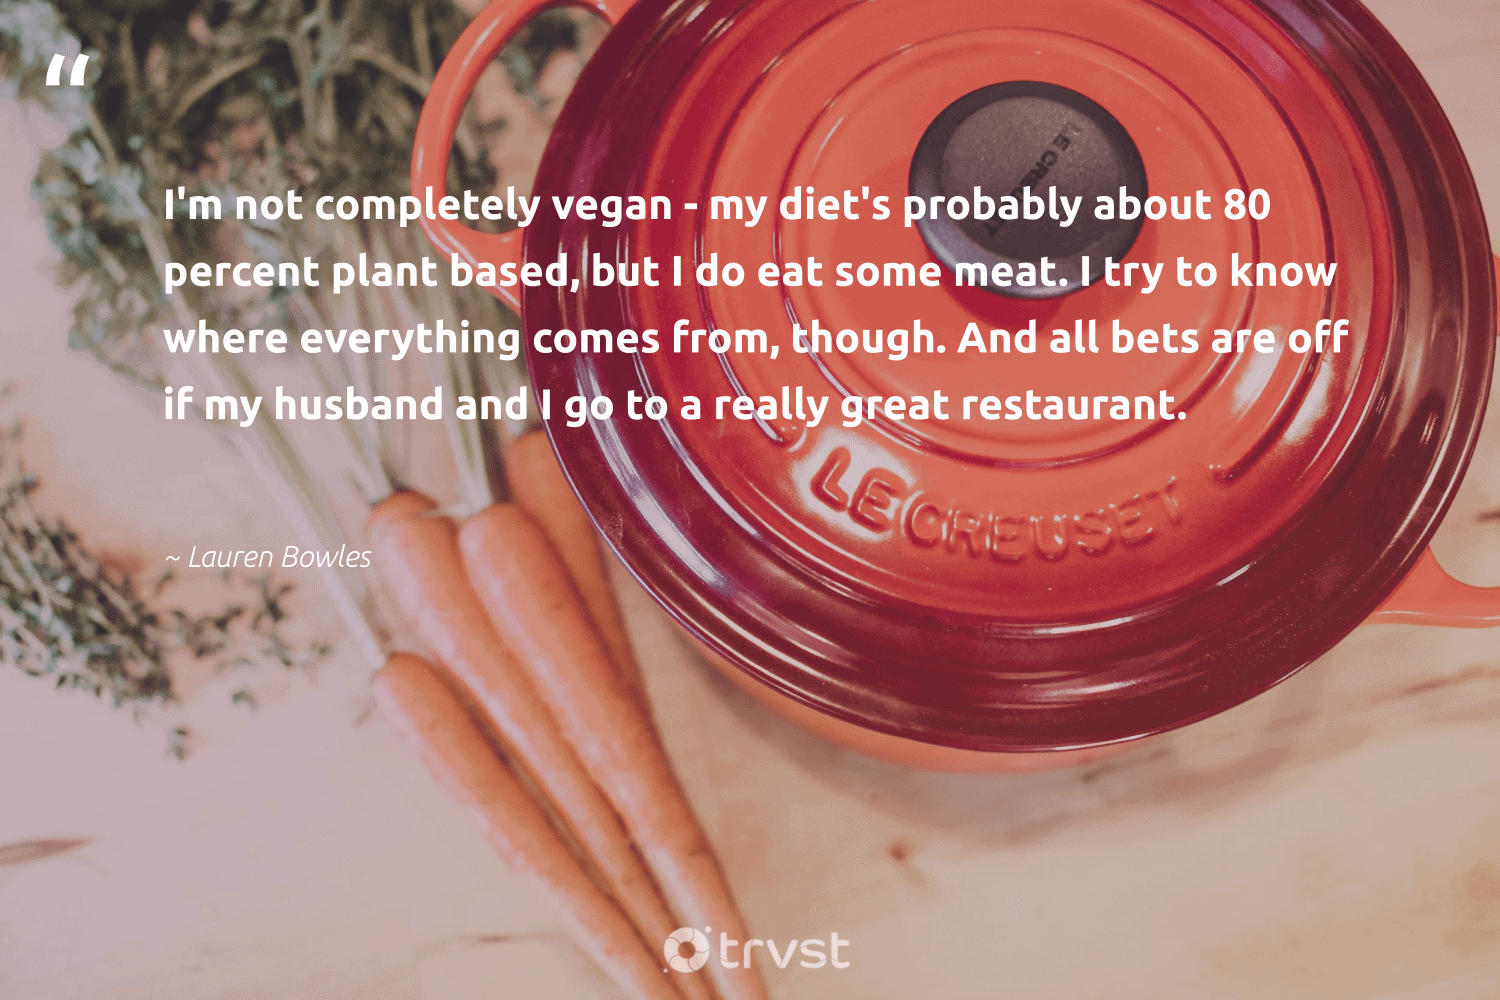 """""""I'm not completely vegan - my diet's probably about 80 percent plant based, but I do eat some meat. I try to know where everything comes from, though. And all bets are off if my husband and I go to a really great restaurant.""""  - Lauren Bowles #trvst #quotes #vegan #plantbased #veggie #vegetarian #bethechange #sustainable #planetearthfirst #veganfood #govegan #fashion"""